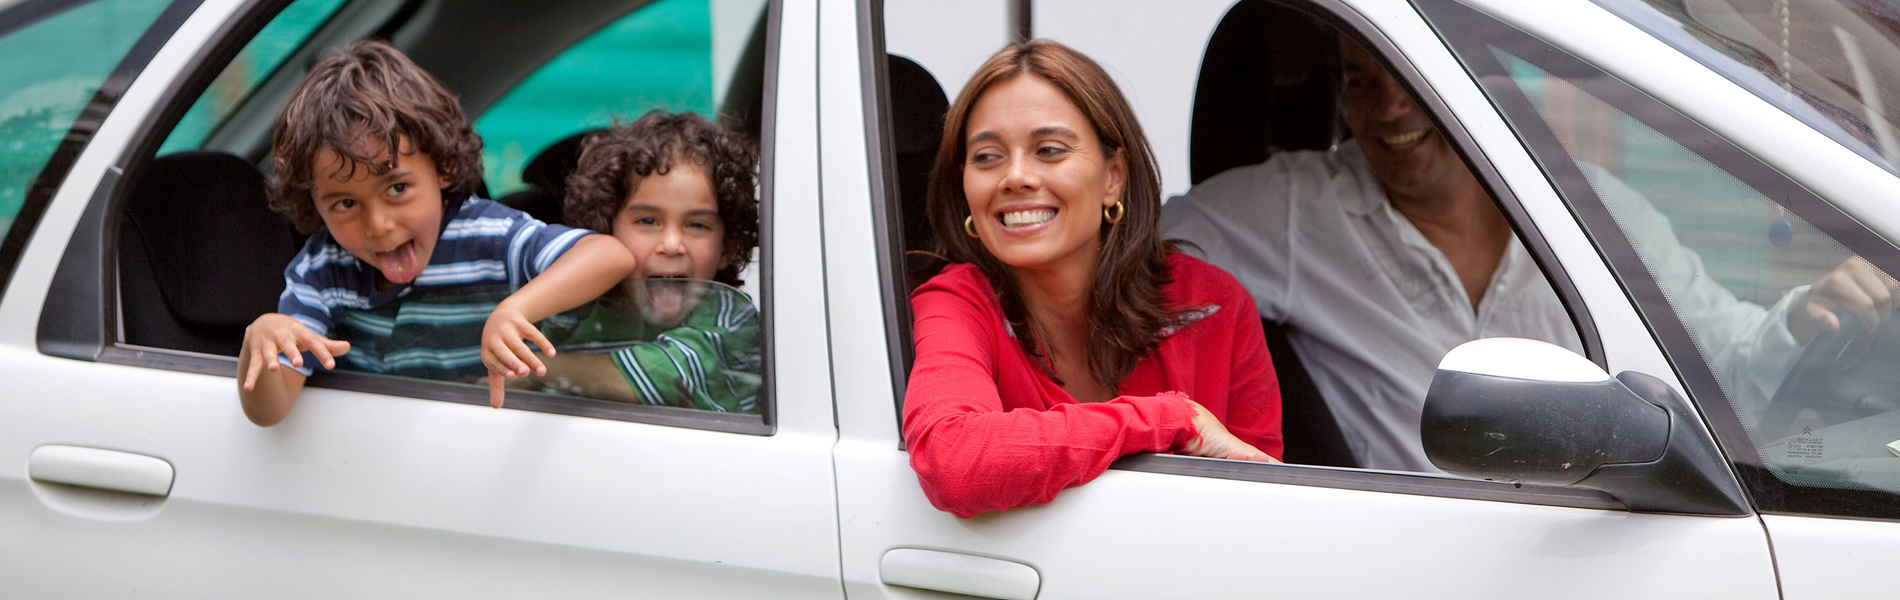 Couple with kids smiling in a car